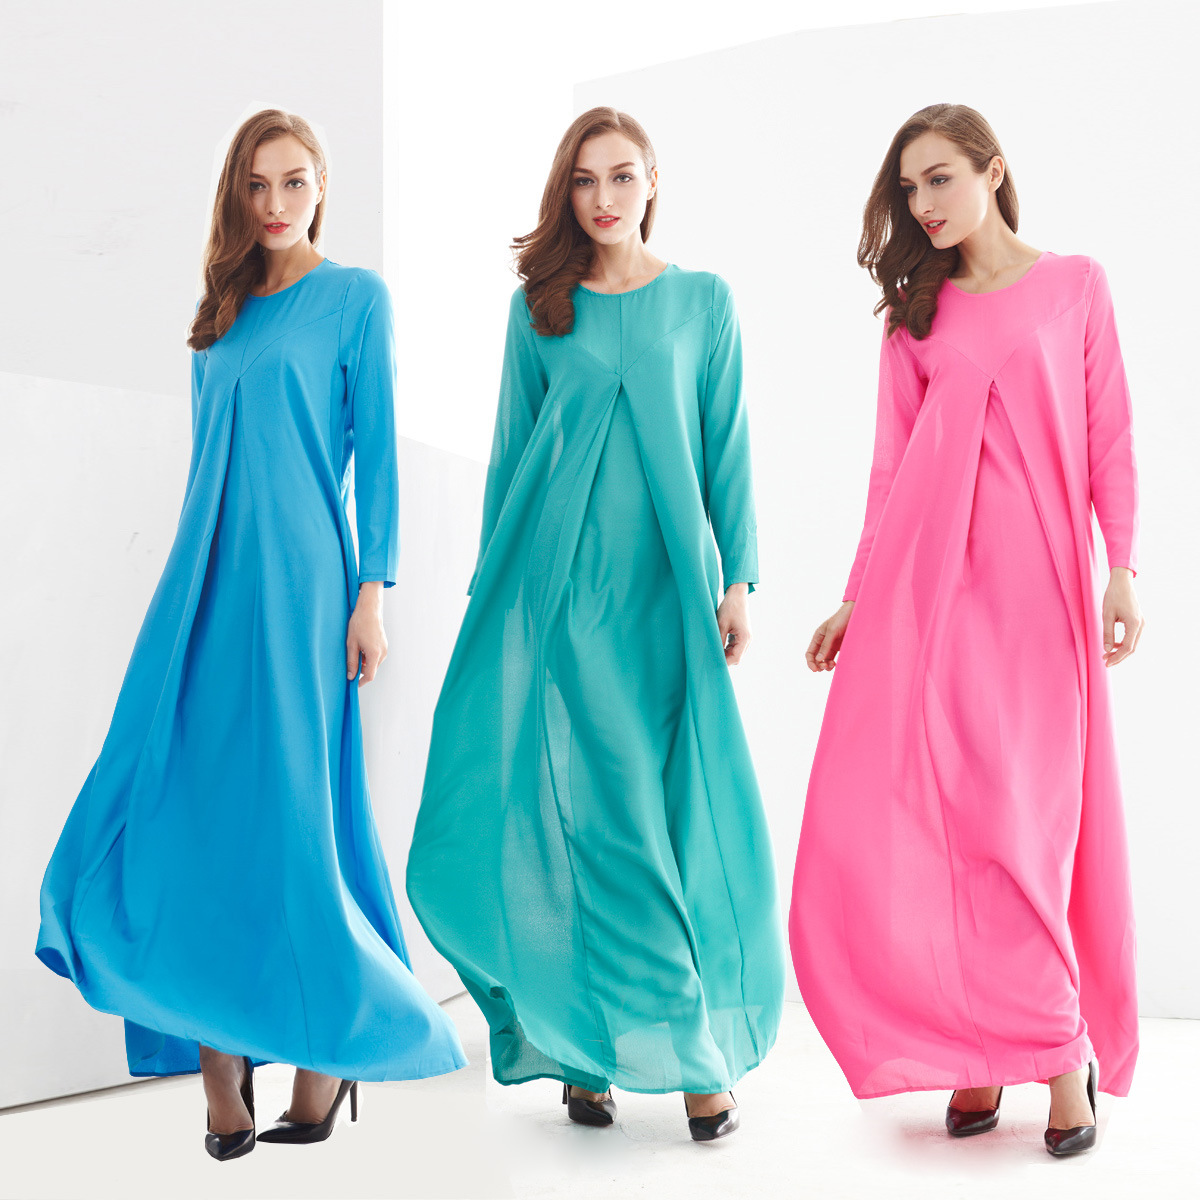 Long dress muslimah indonesia